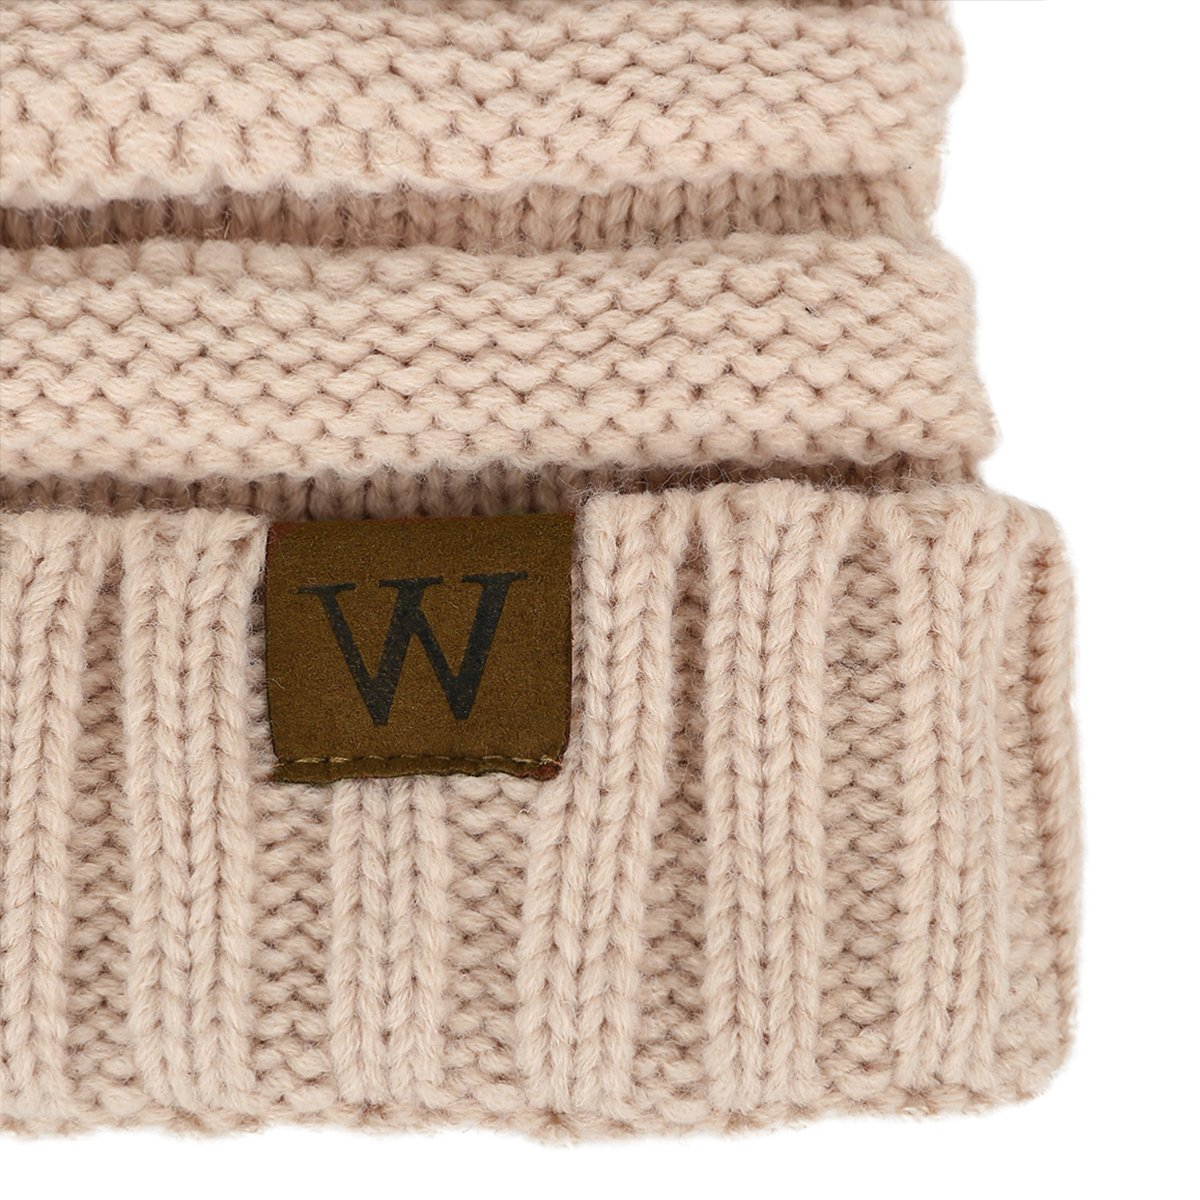 EVRFELAN Soft Winter Warm Knitting Hat Cable Beanie Solid Daily Slouchy Hats Skull Cap (Beige)